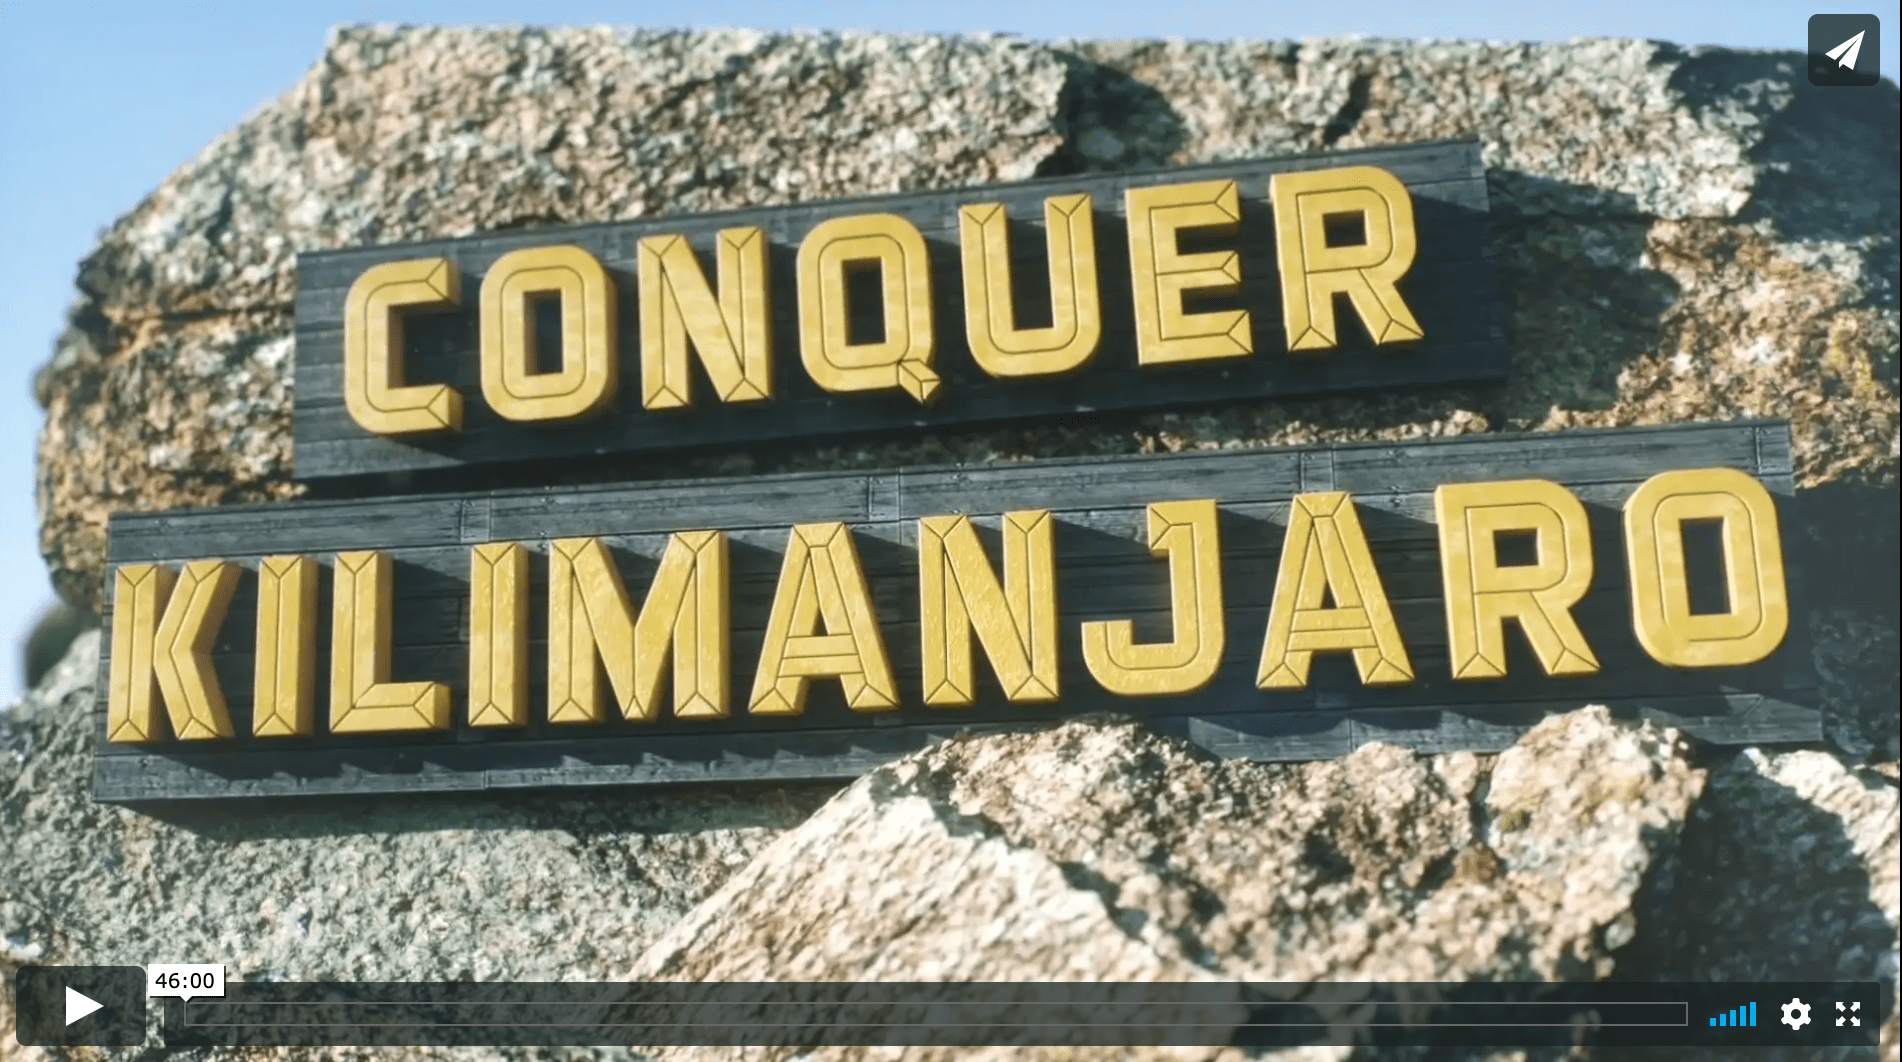 Climb Kilimanjaro for Charity 2019 | Challenges